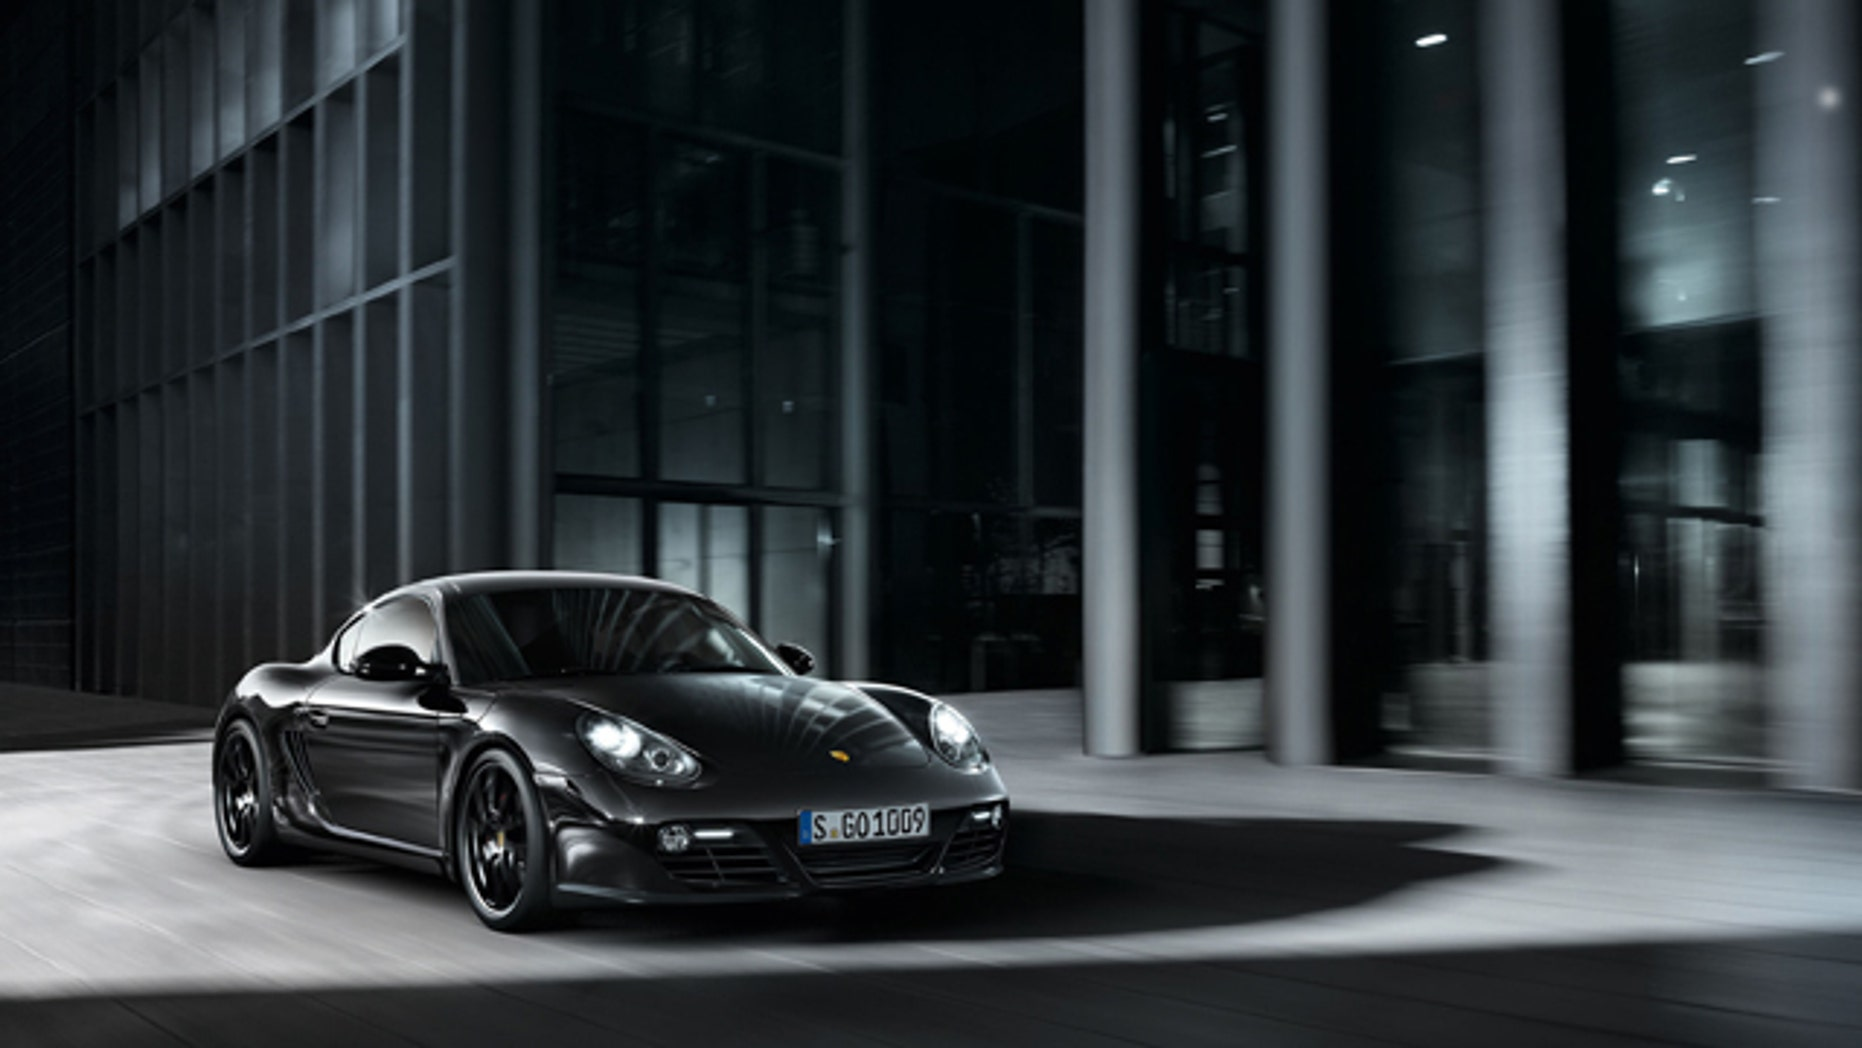 2012 Porsche Cayman S Black Edition.